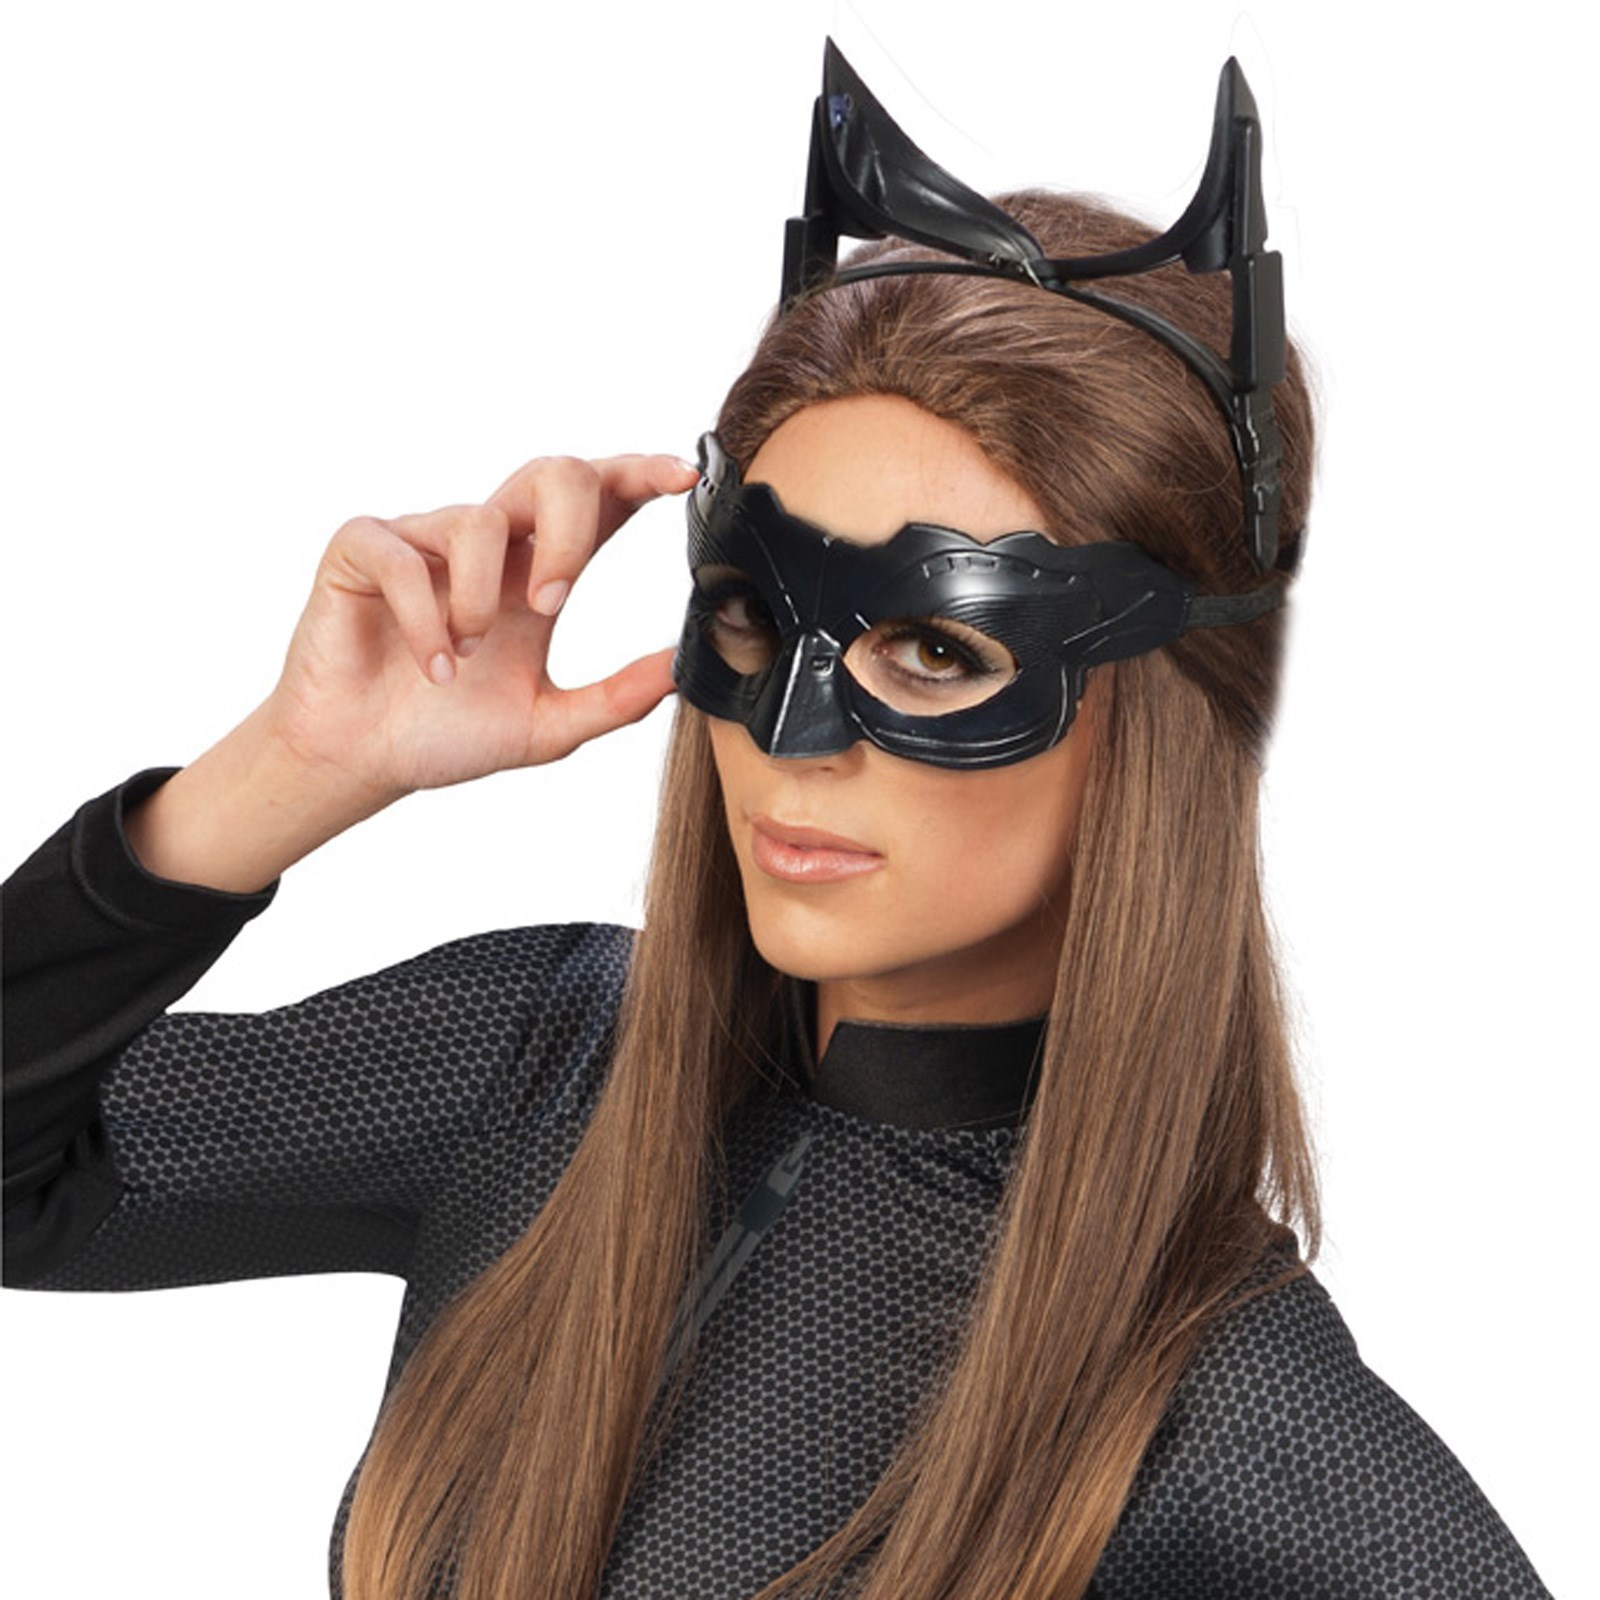 1960s halloween decorations - Batman The Dark Knight Rises Catwoman Deluxe Accessory Kit Adult